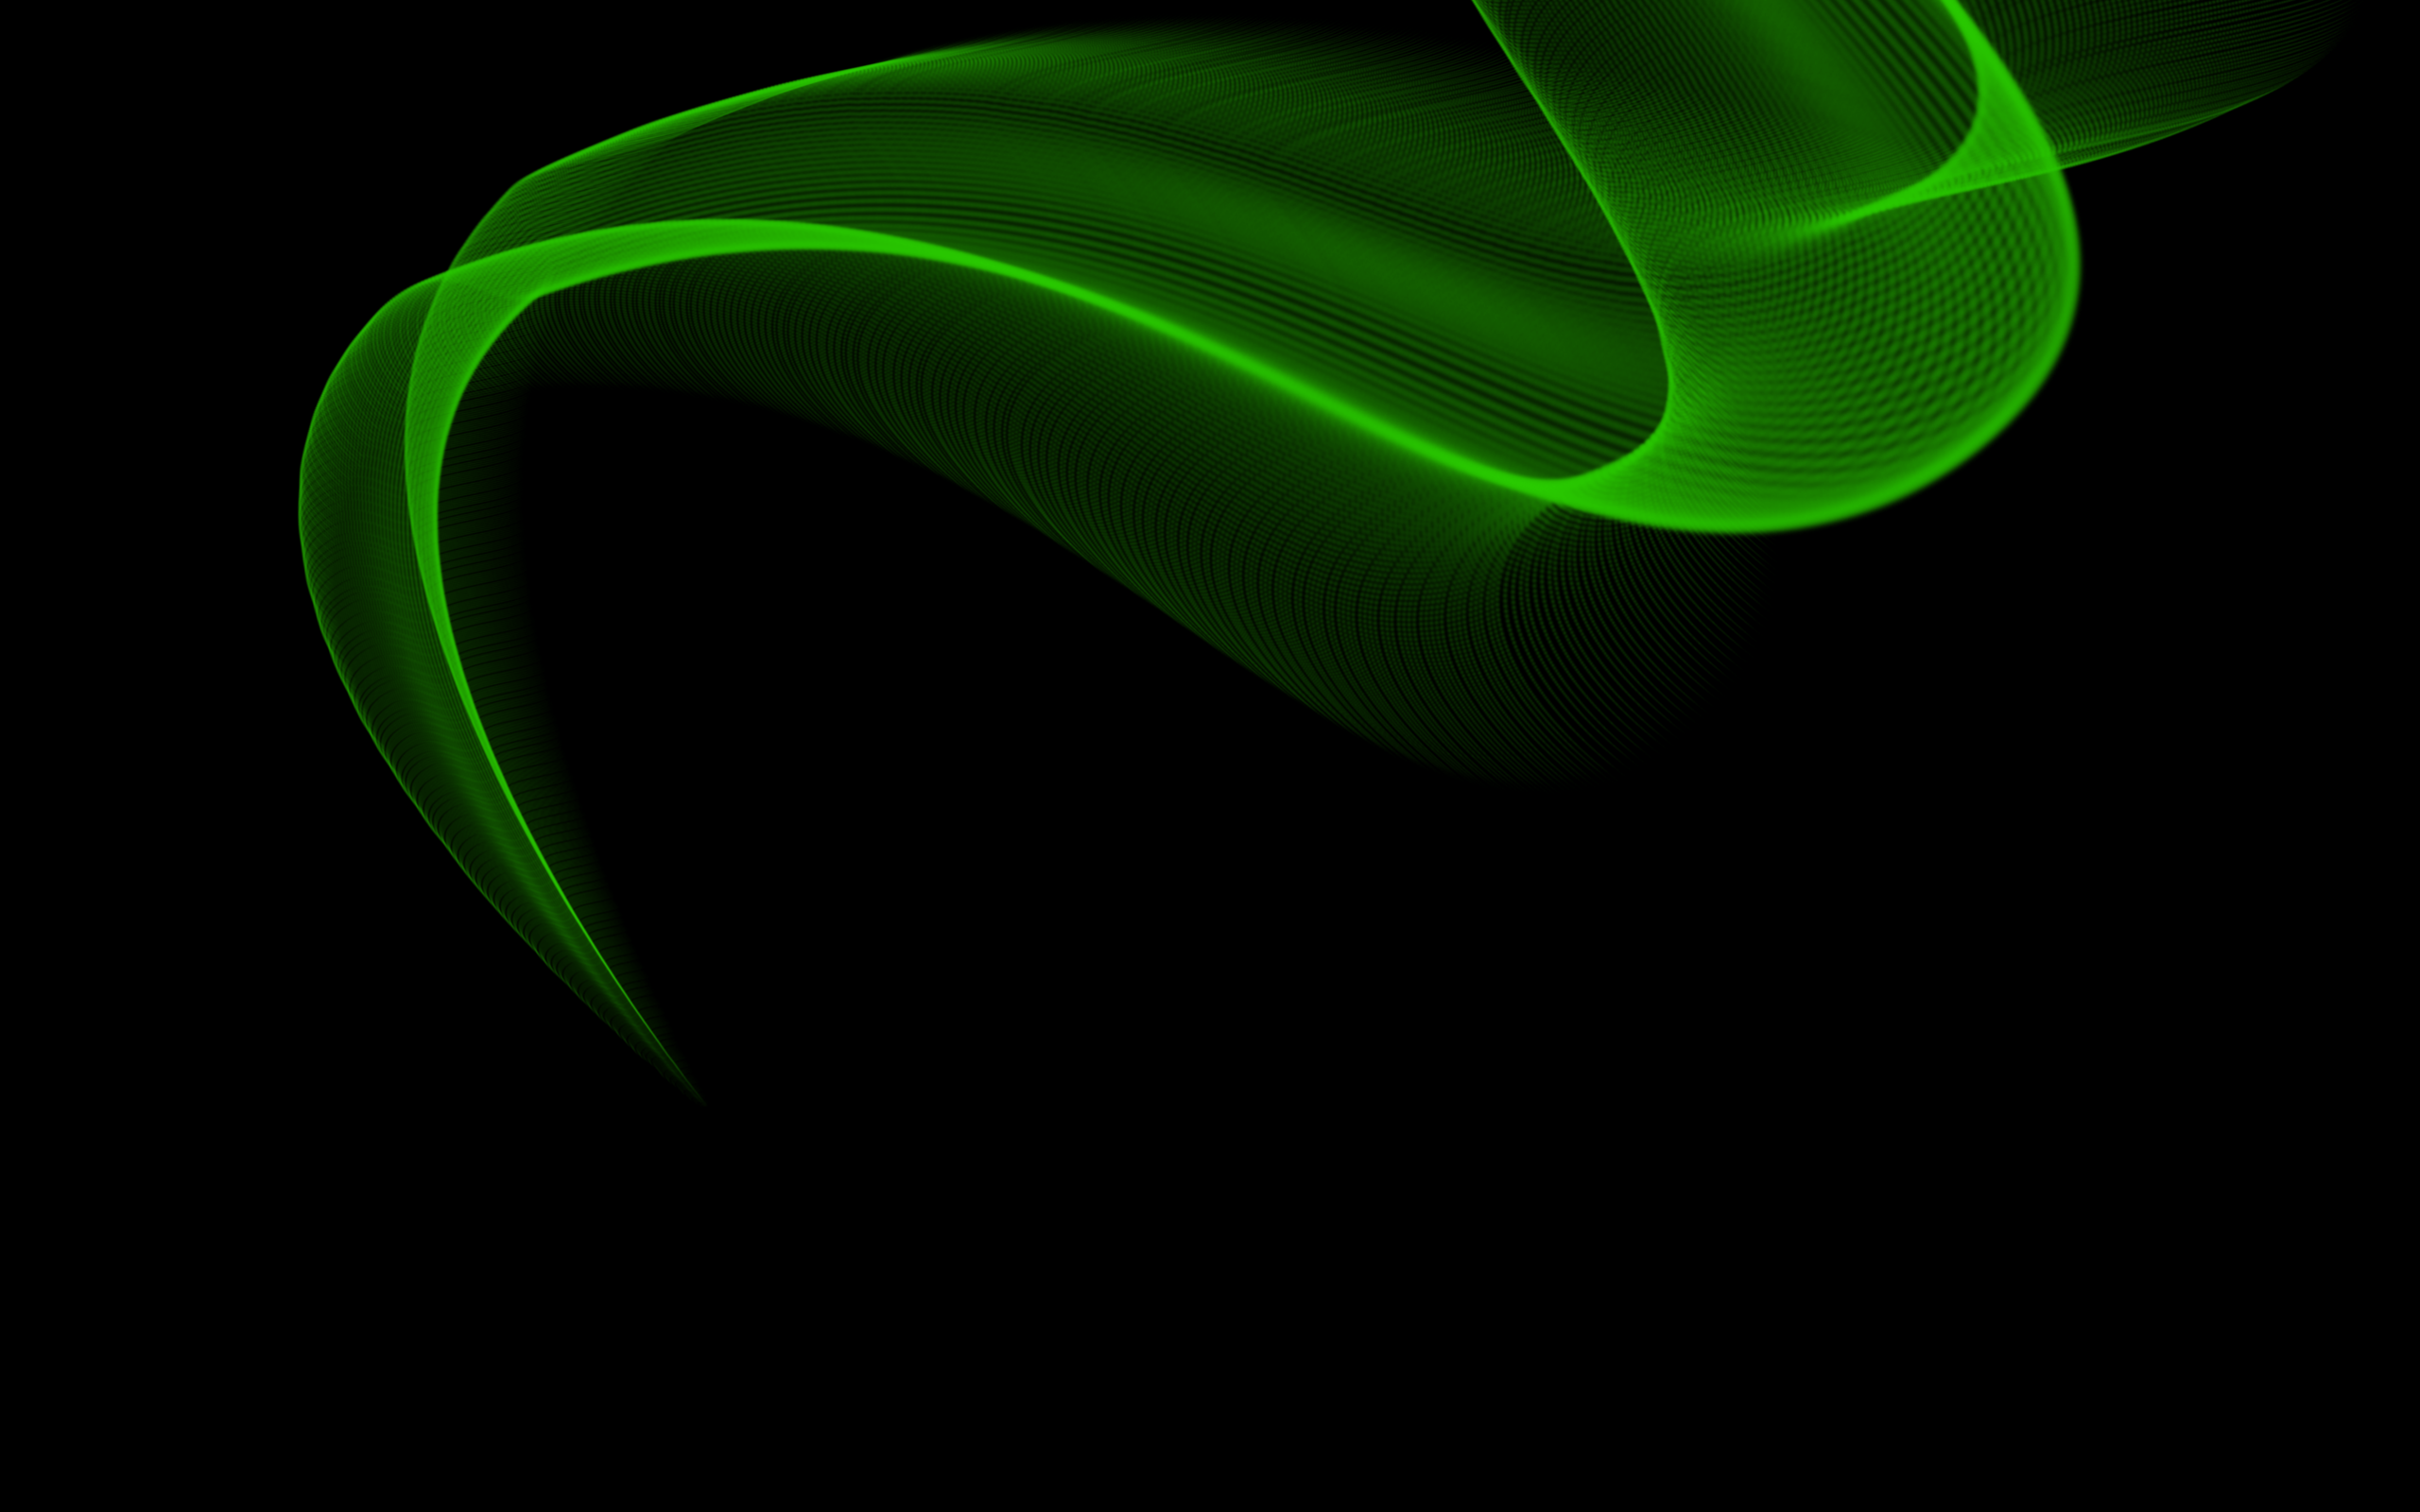 Smooth Light Green Wallpaper By Jeshans